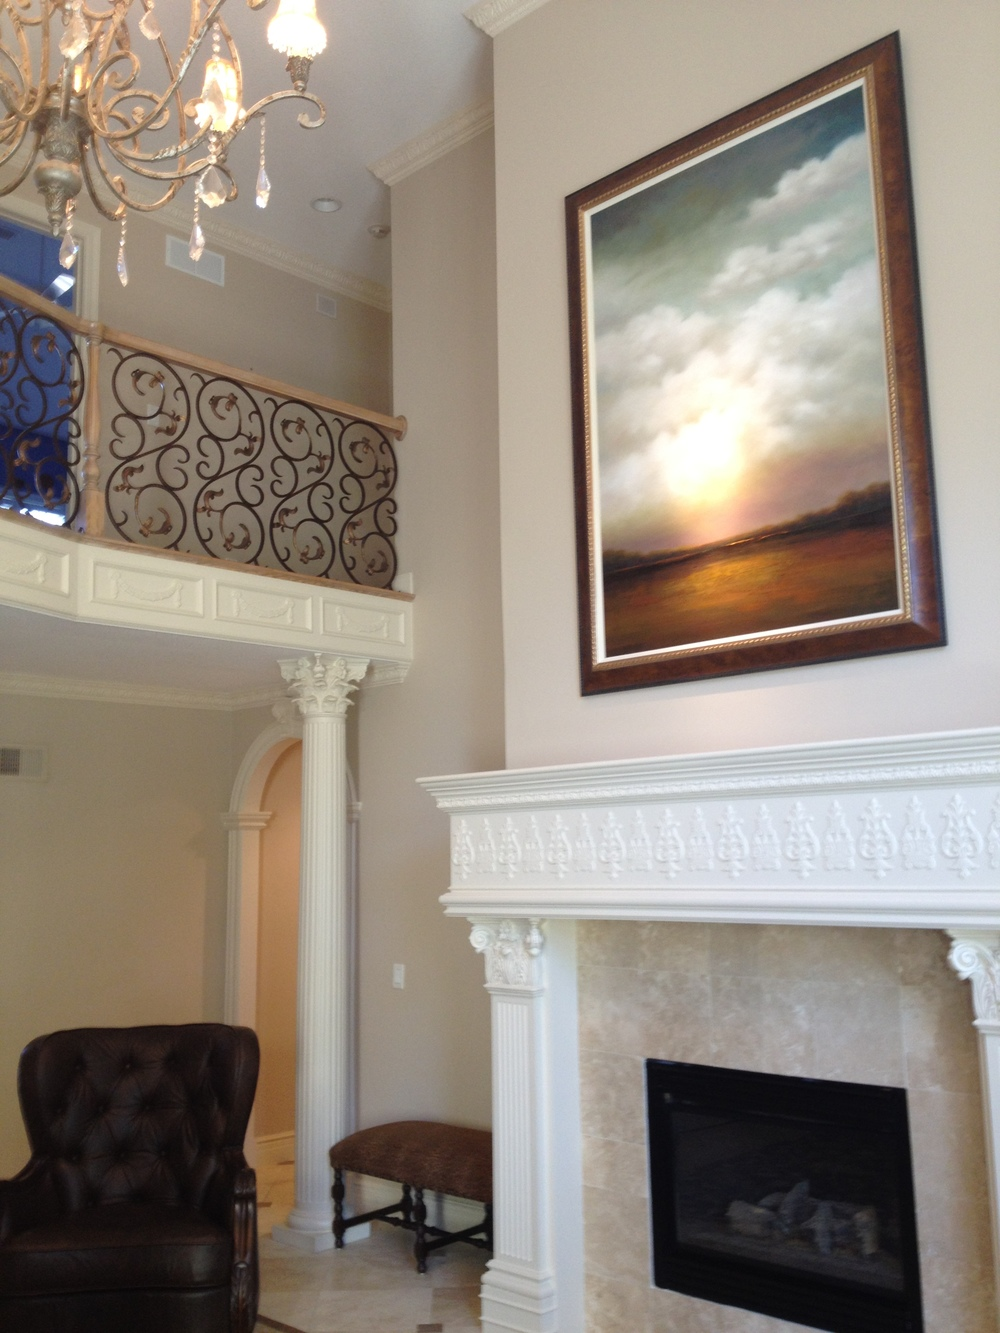 The large scale and soaring skies of this painting connects the first and second floor of this home.